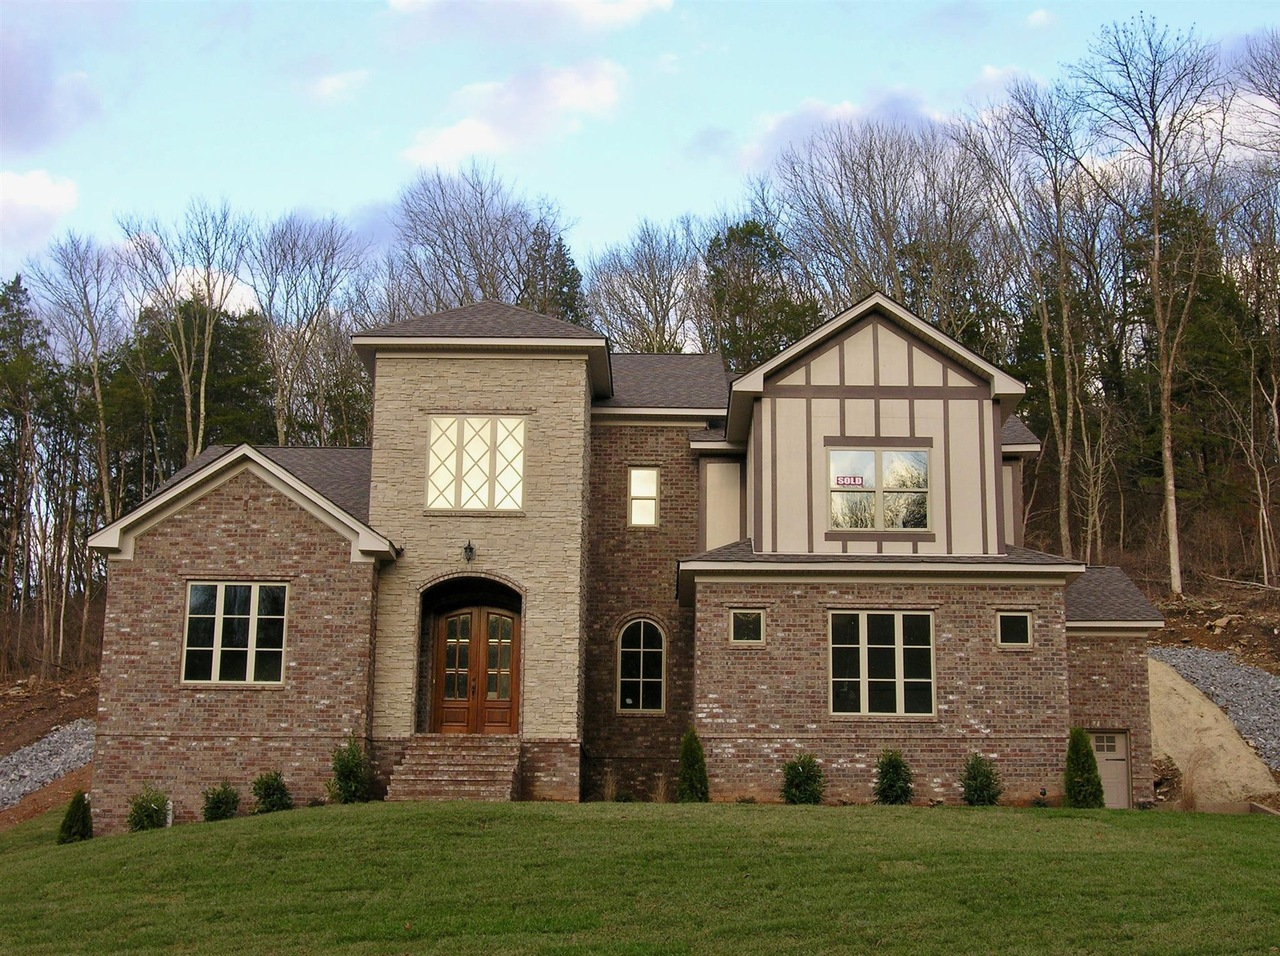 Brentwood Lights Subdivision Homes For Sale Brentwood TN